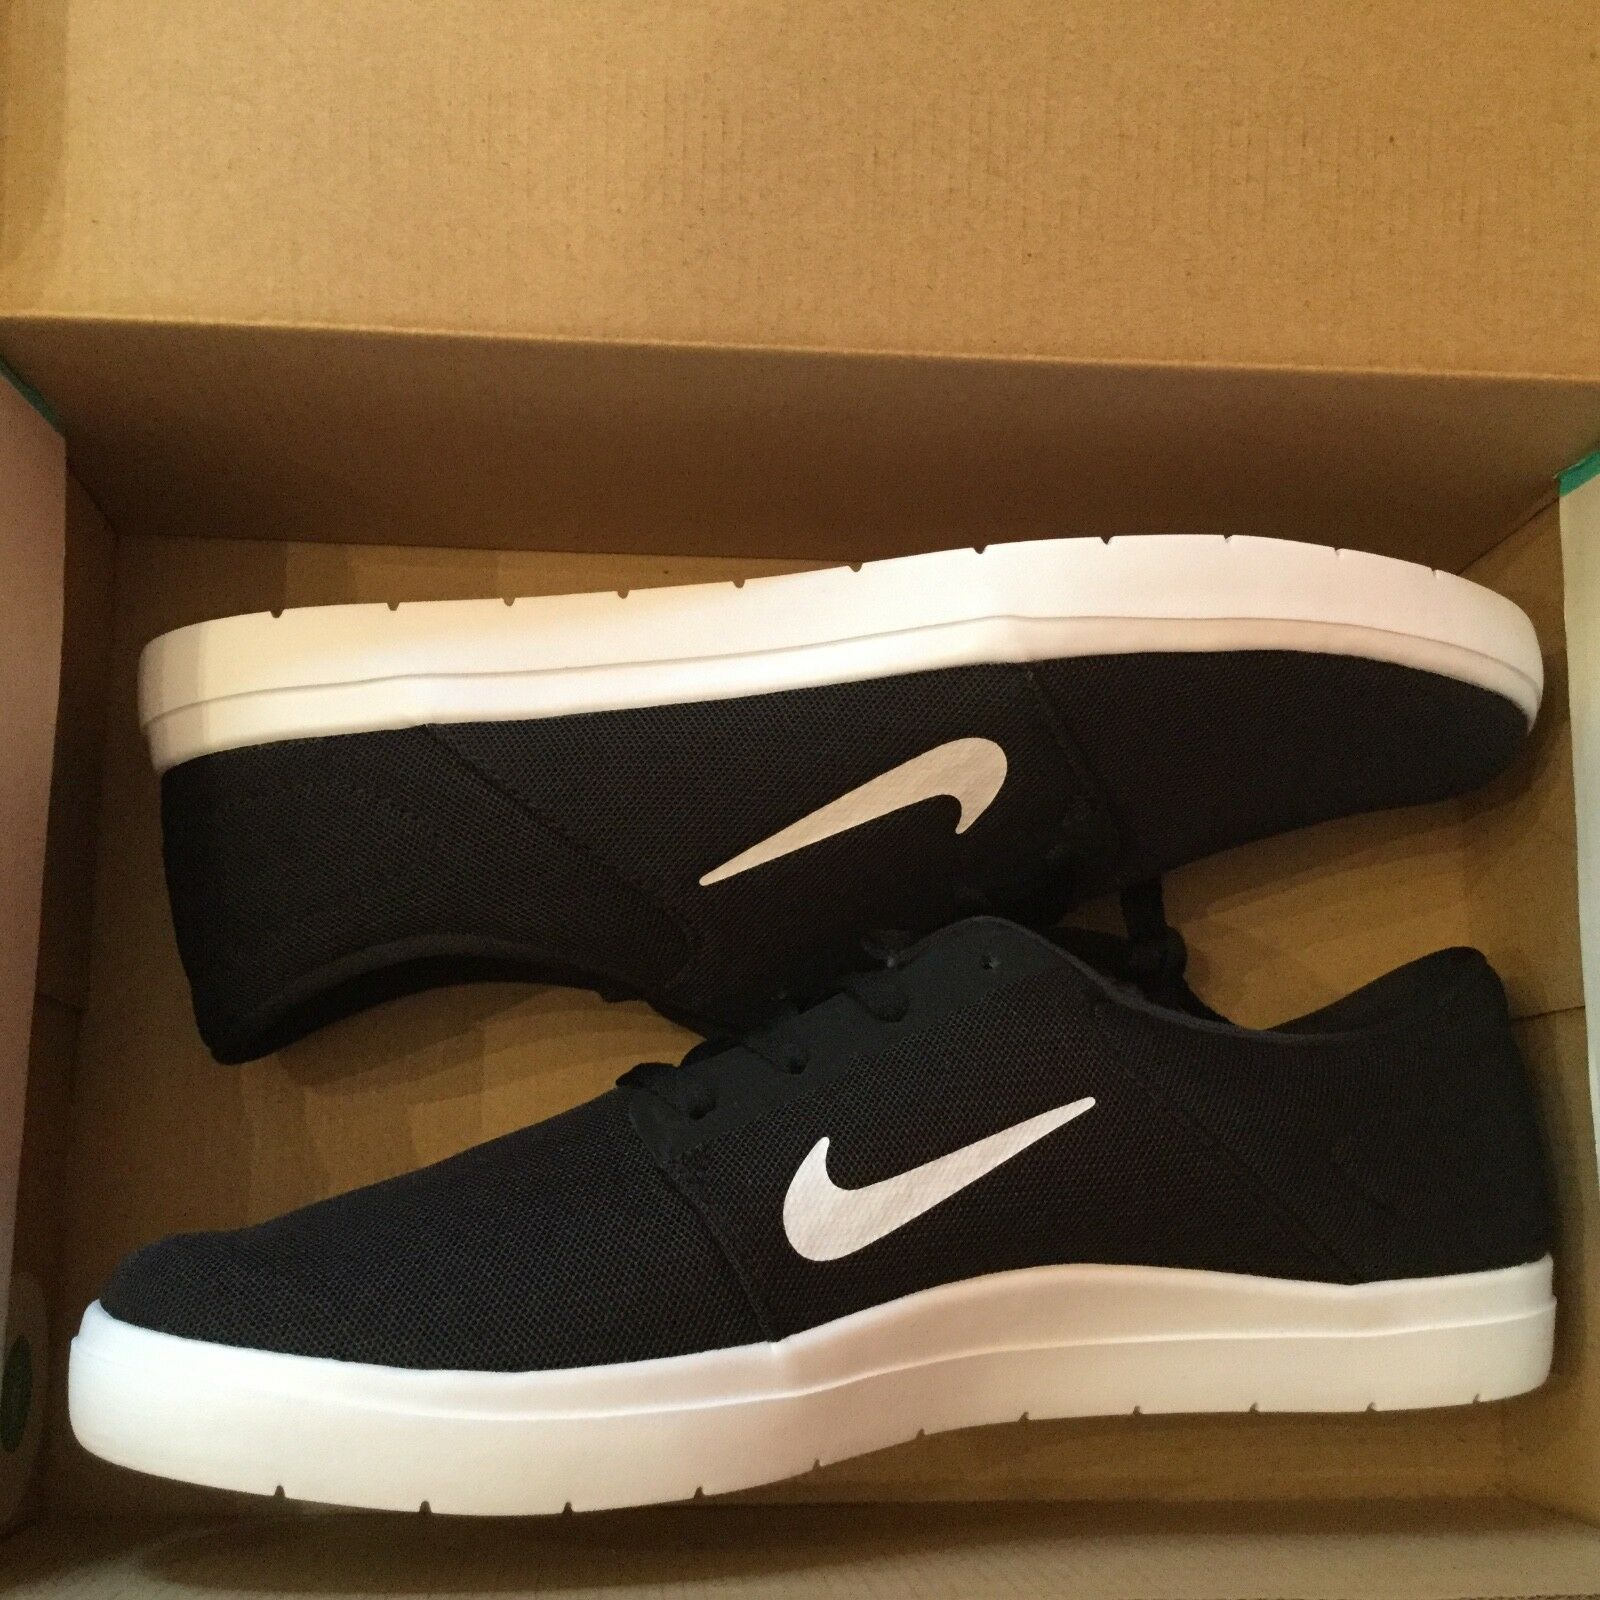 New Mens Nike SB portmore ultralight m Skateboarding Shoes 725041-013 Sz 6.5 The most popular shoes for men and women